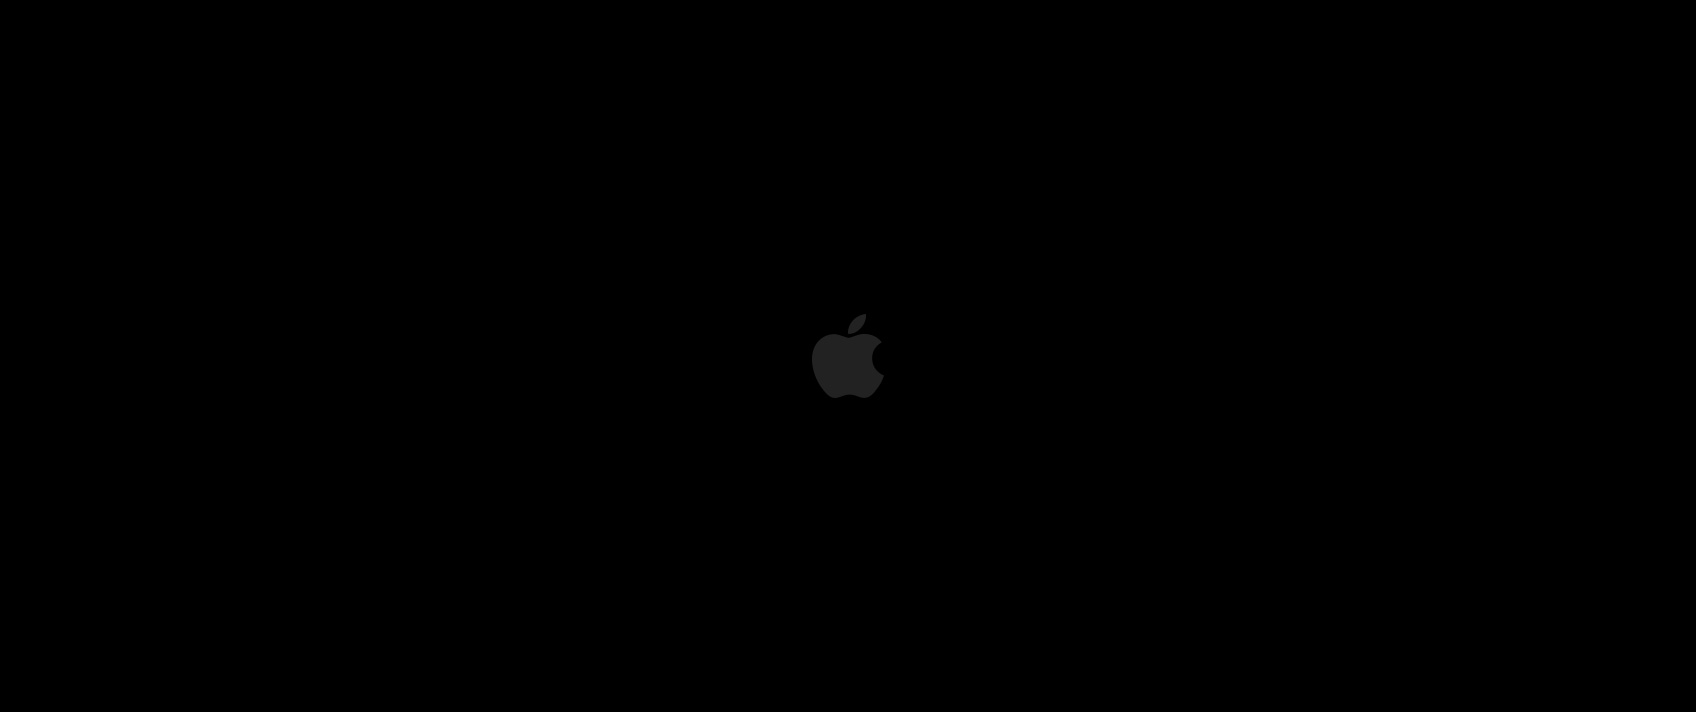 apple black image